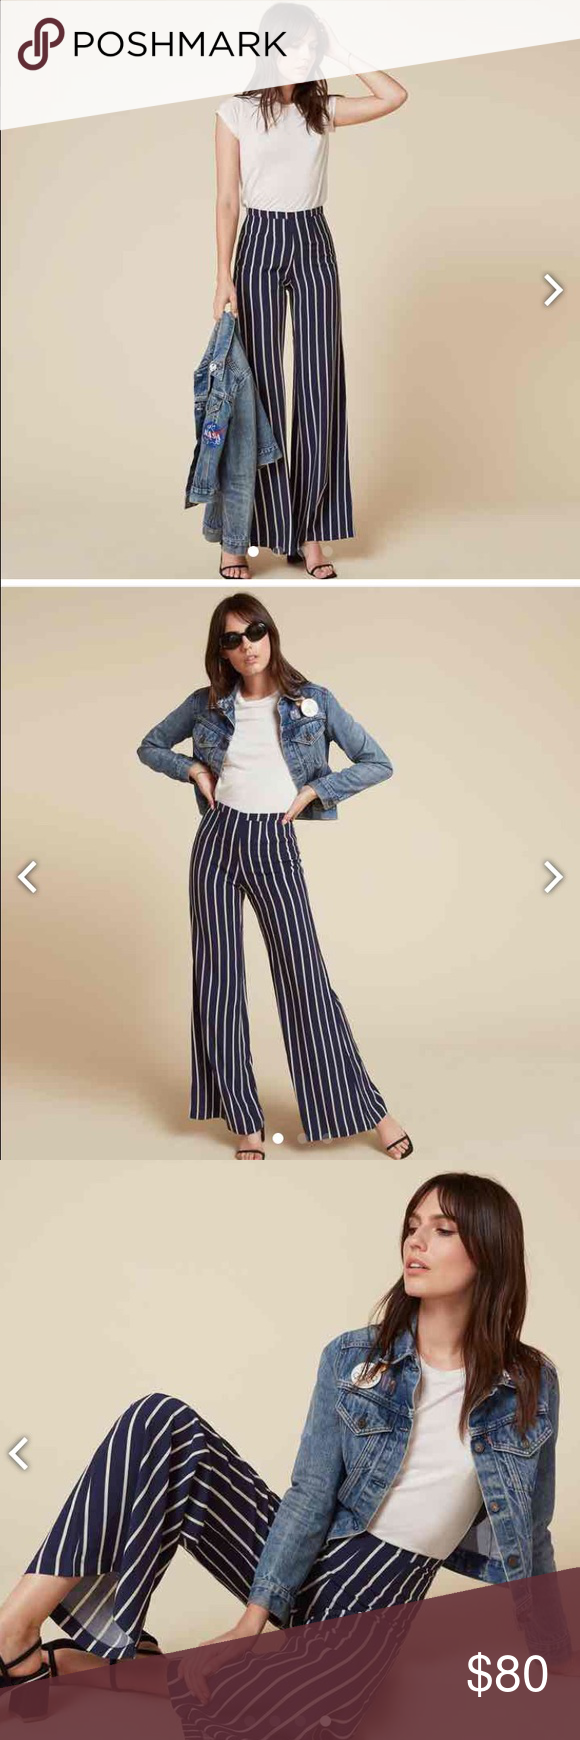 Nautical striped pant True to size. Wide leg. Looks great with a tshirt and sandals! Reformation Pants Wide Leg